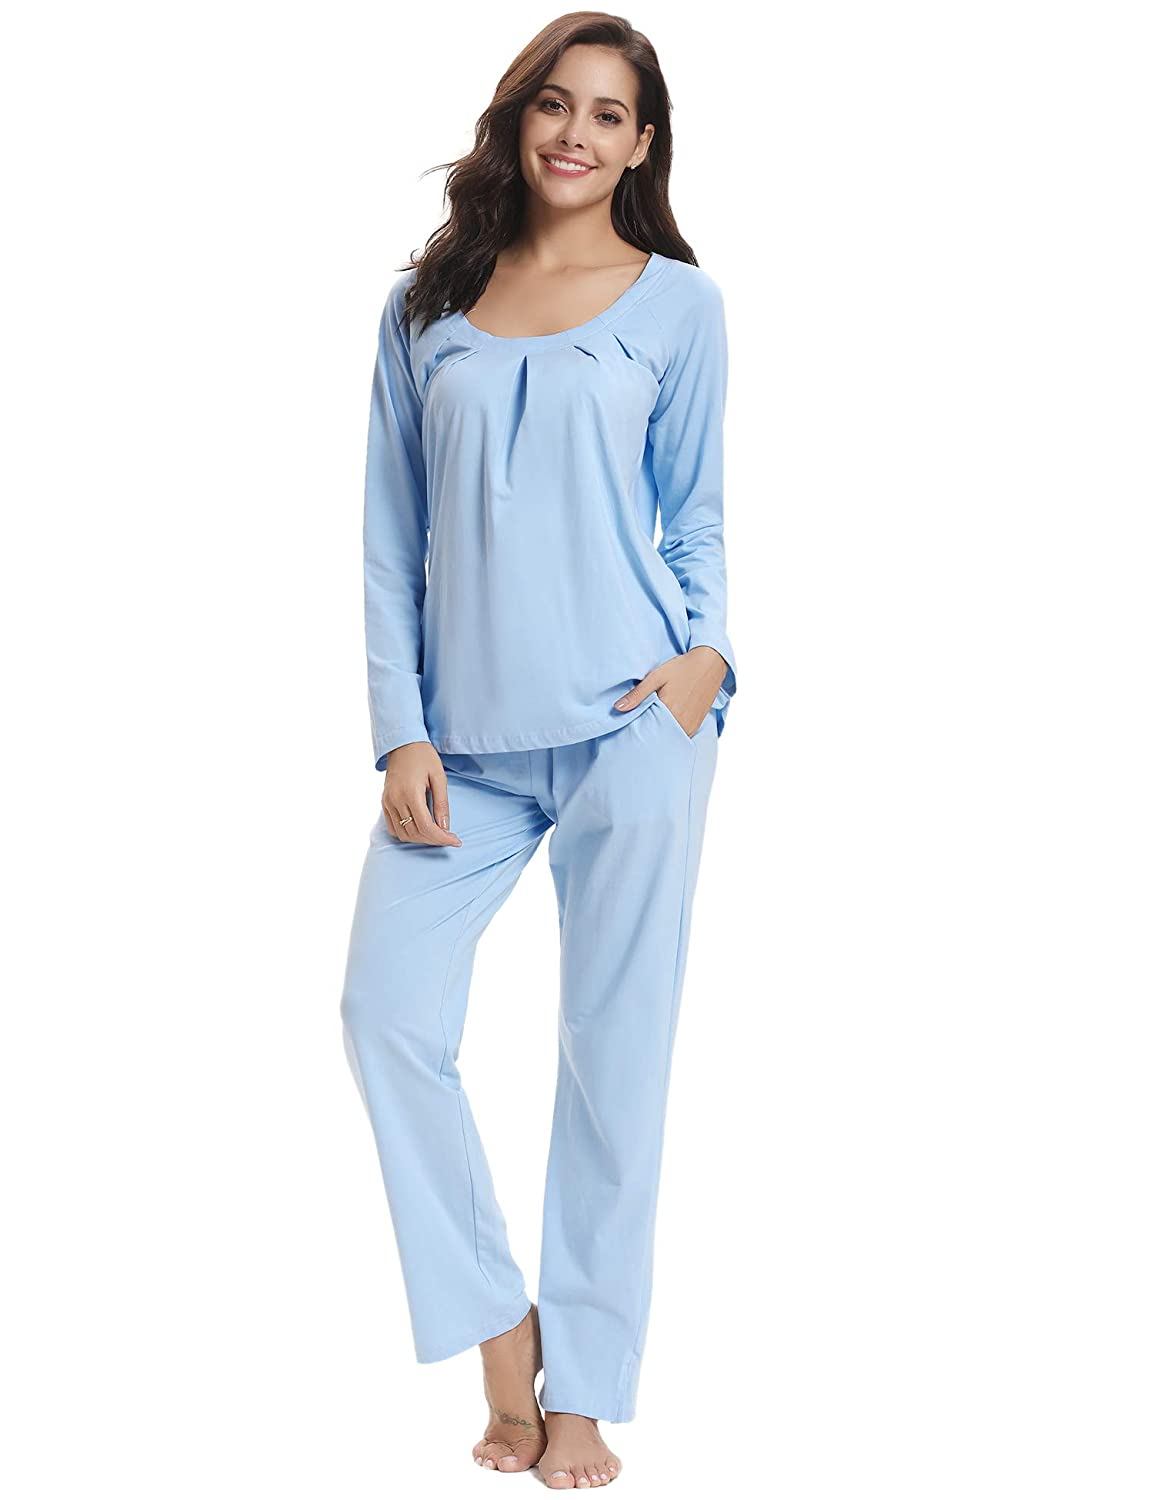 Aibrou Women's Long Pajamas Set, Soft Loungewear Full Length Pure Cotton PJ Set Nightwear Sleepwear AMB00192